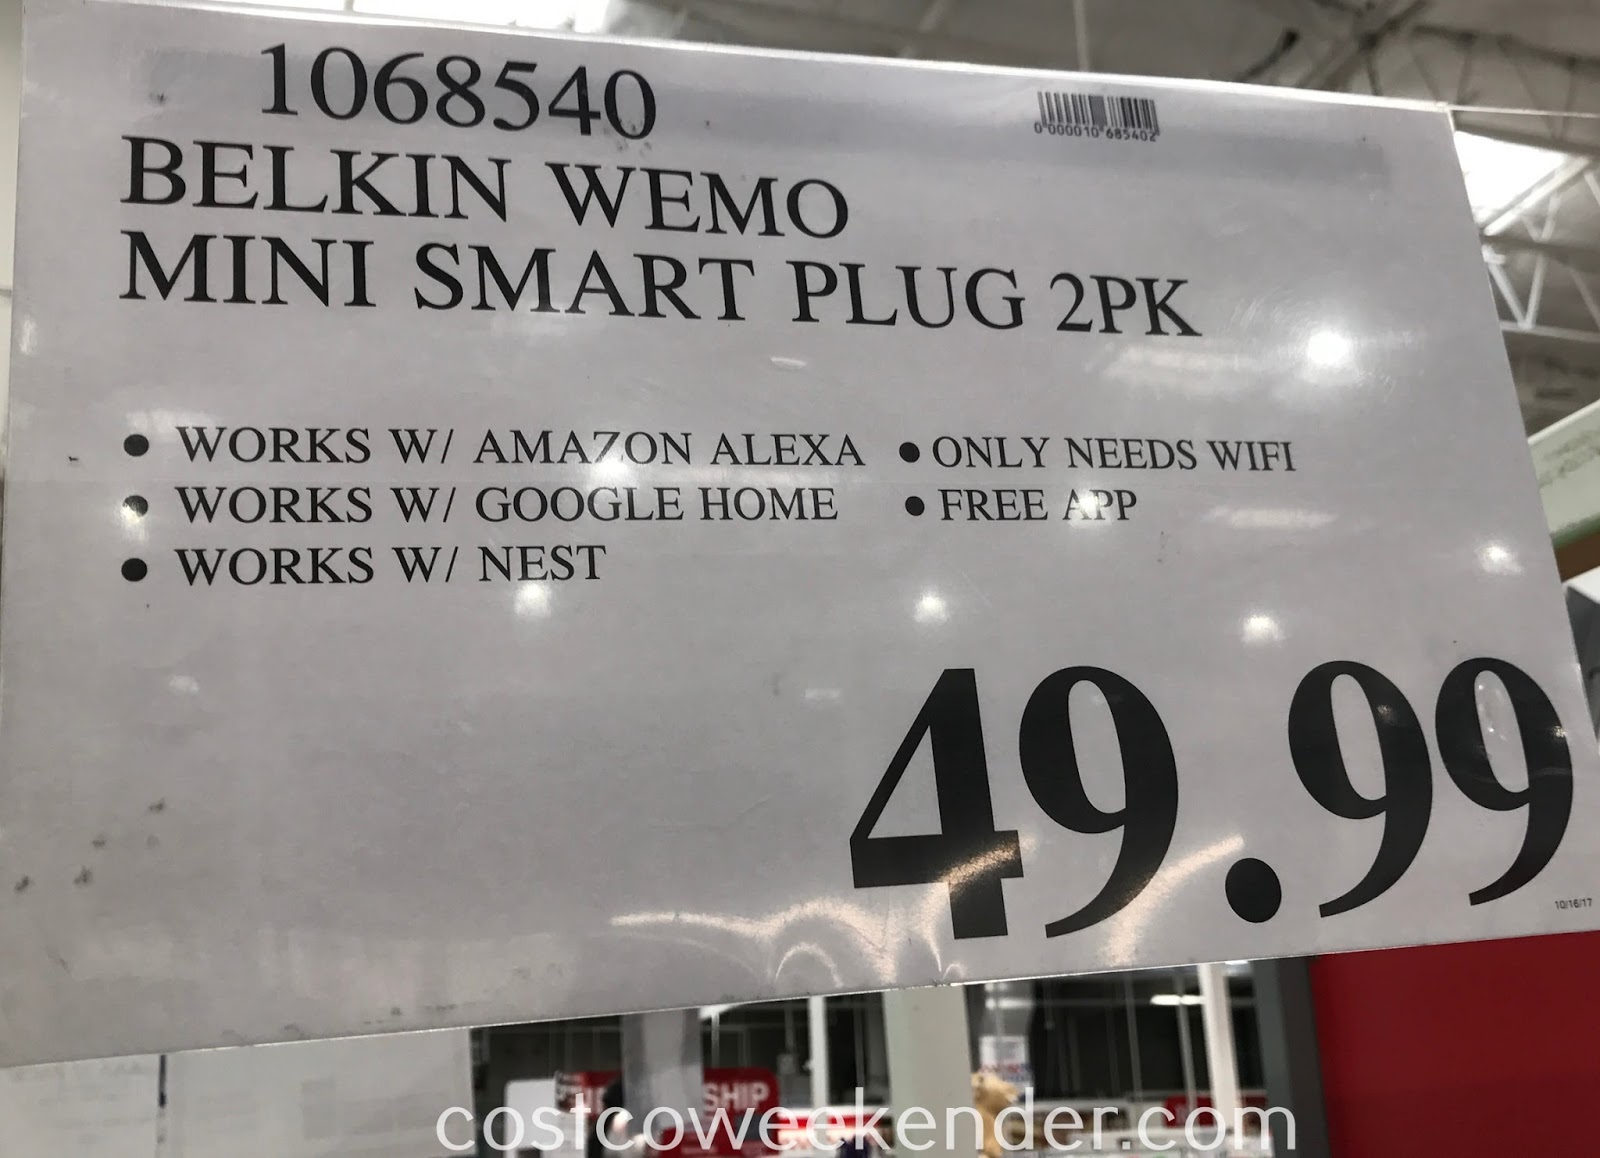 Deal for a 2 pack of Belkin Wemo Mini Wi-Fi Smart Plugs at Costco